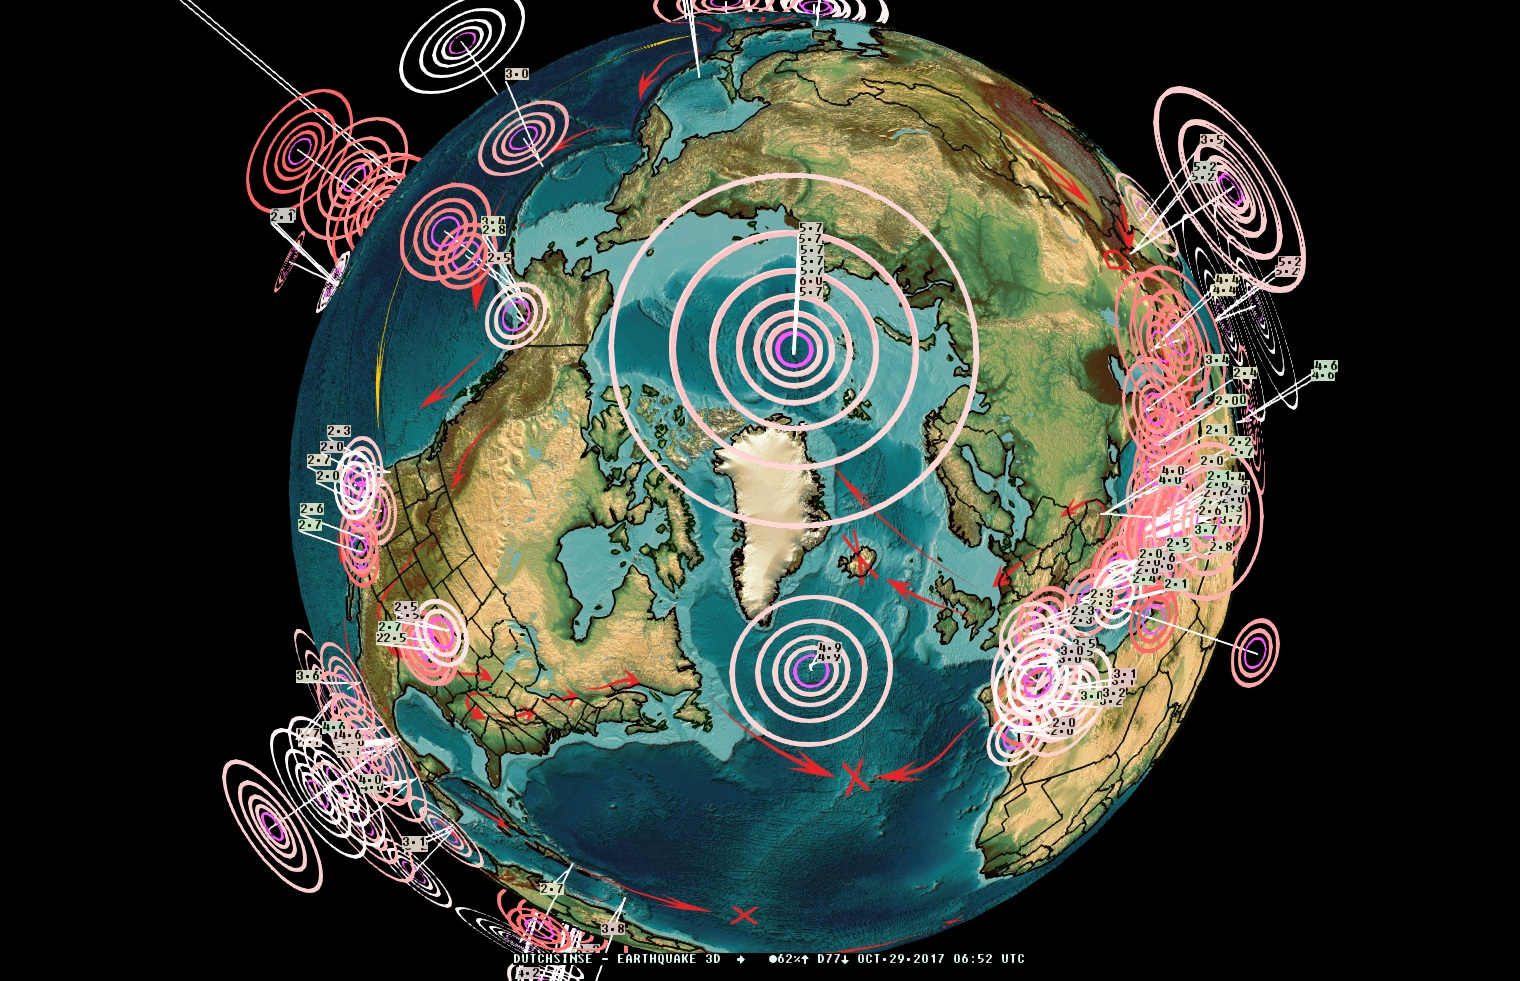 north-pole-earthquake-and-deep-earthquake-event-oct-29-2017a